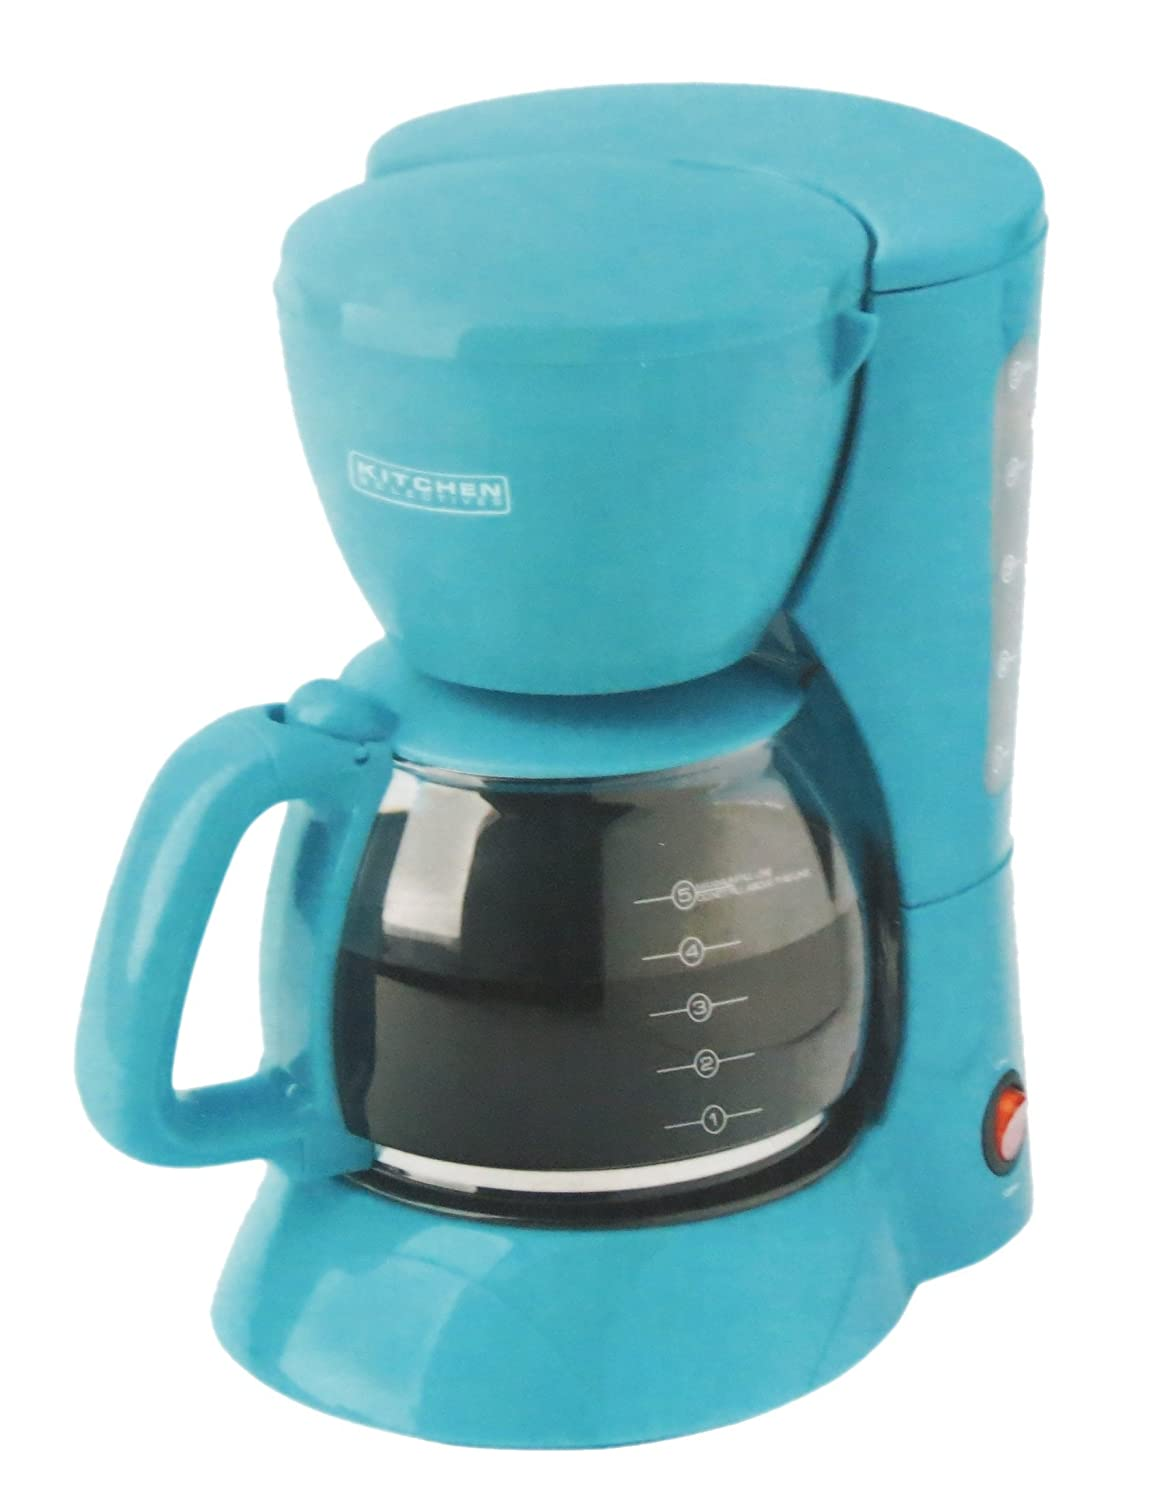 5 Cup Coffee Maker Amazoncom Kitchen Selectives Colors Teal Aqua 5 Cup Coffee Maker